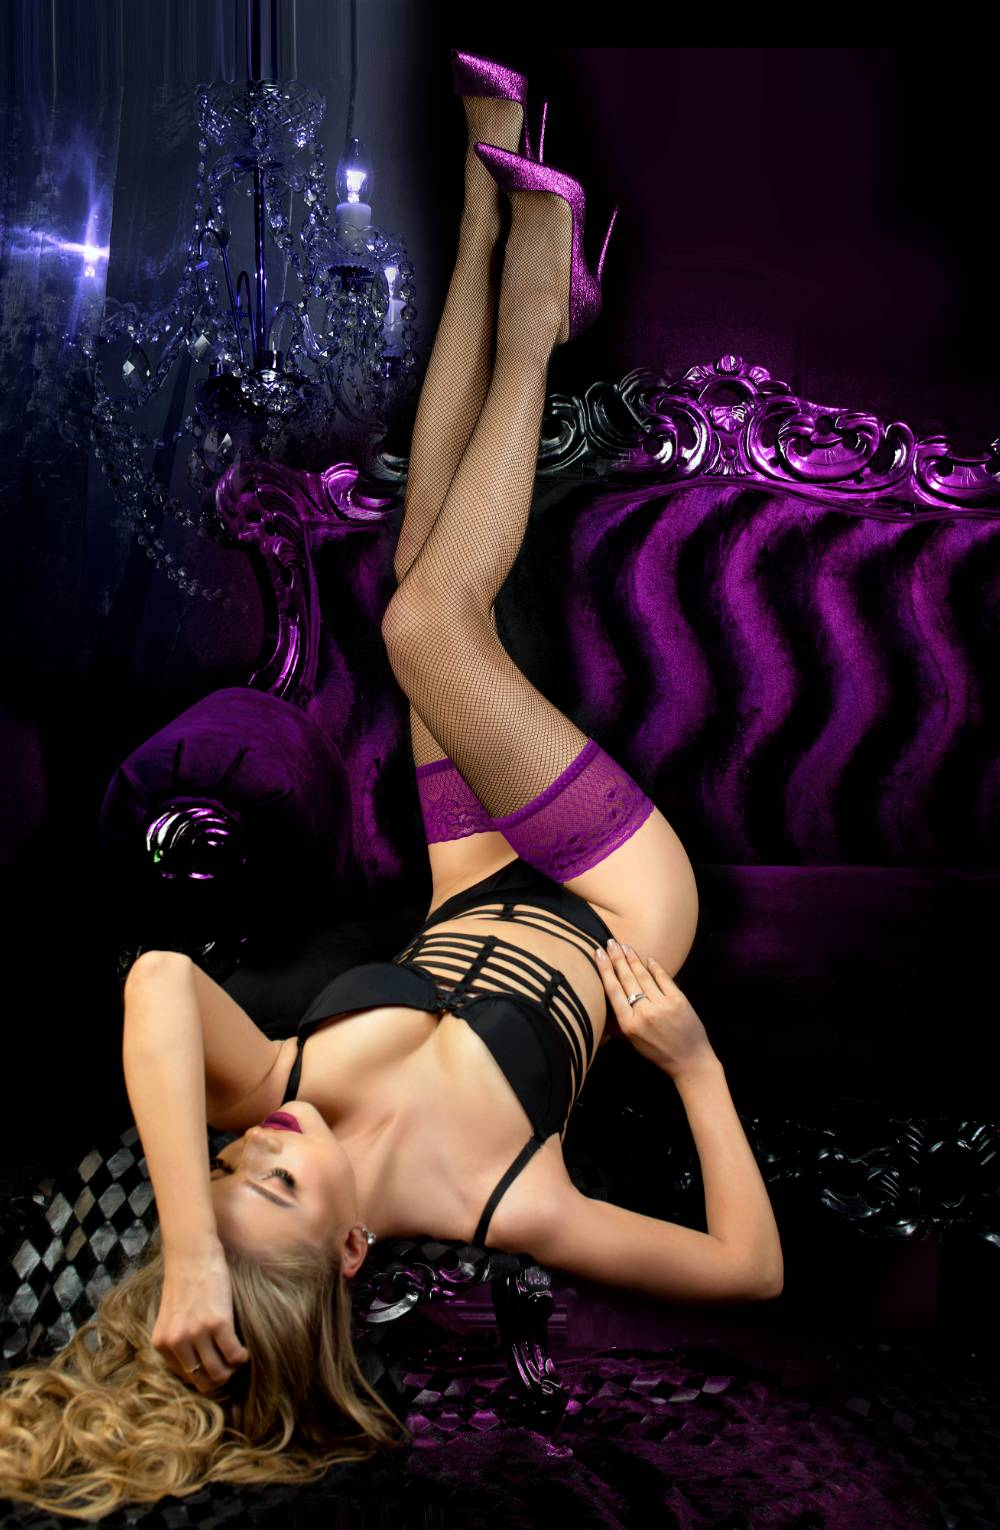 Black fishnet stockings with the purple top